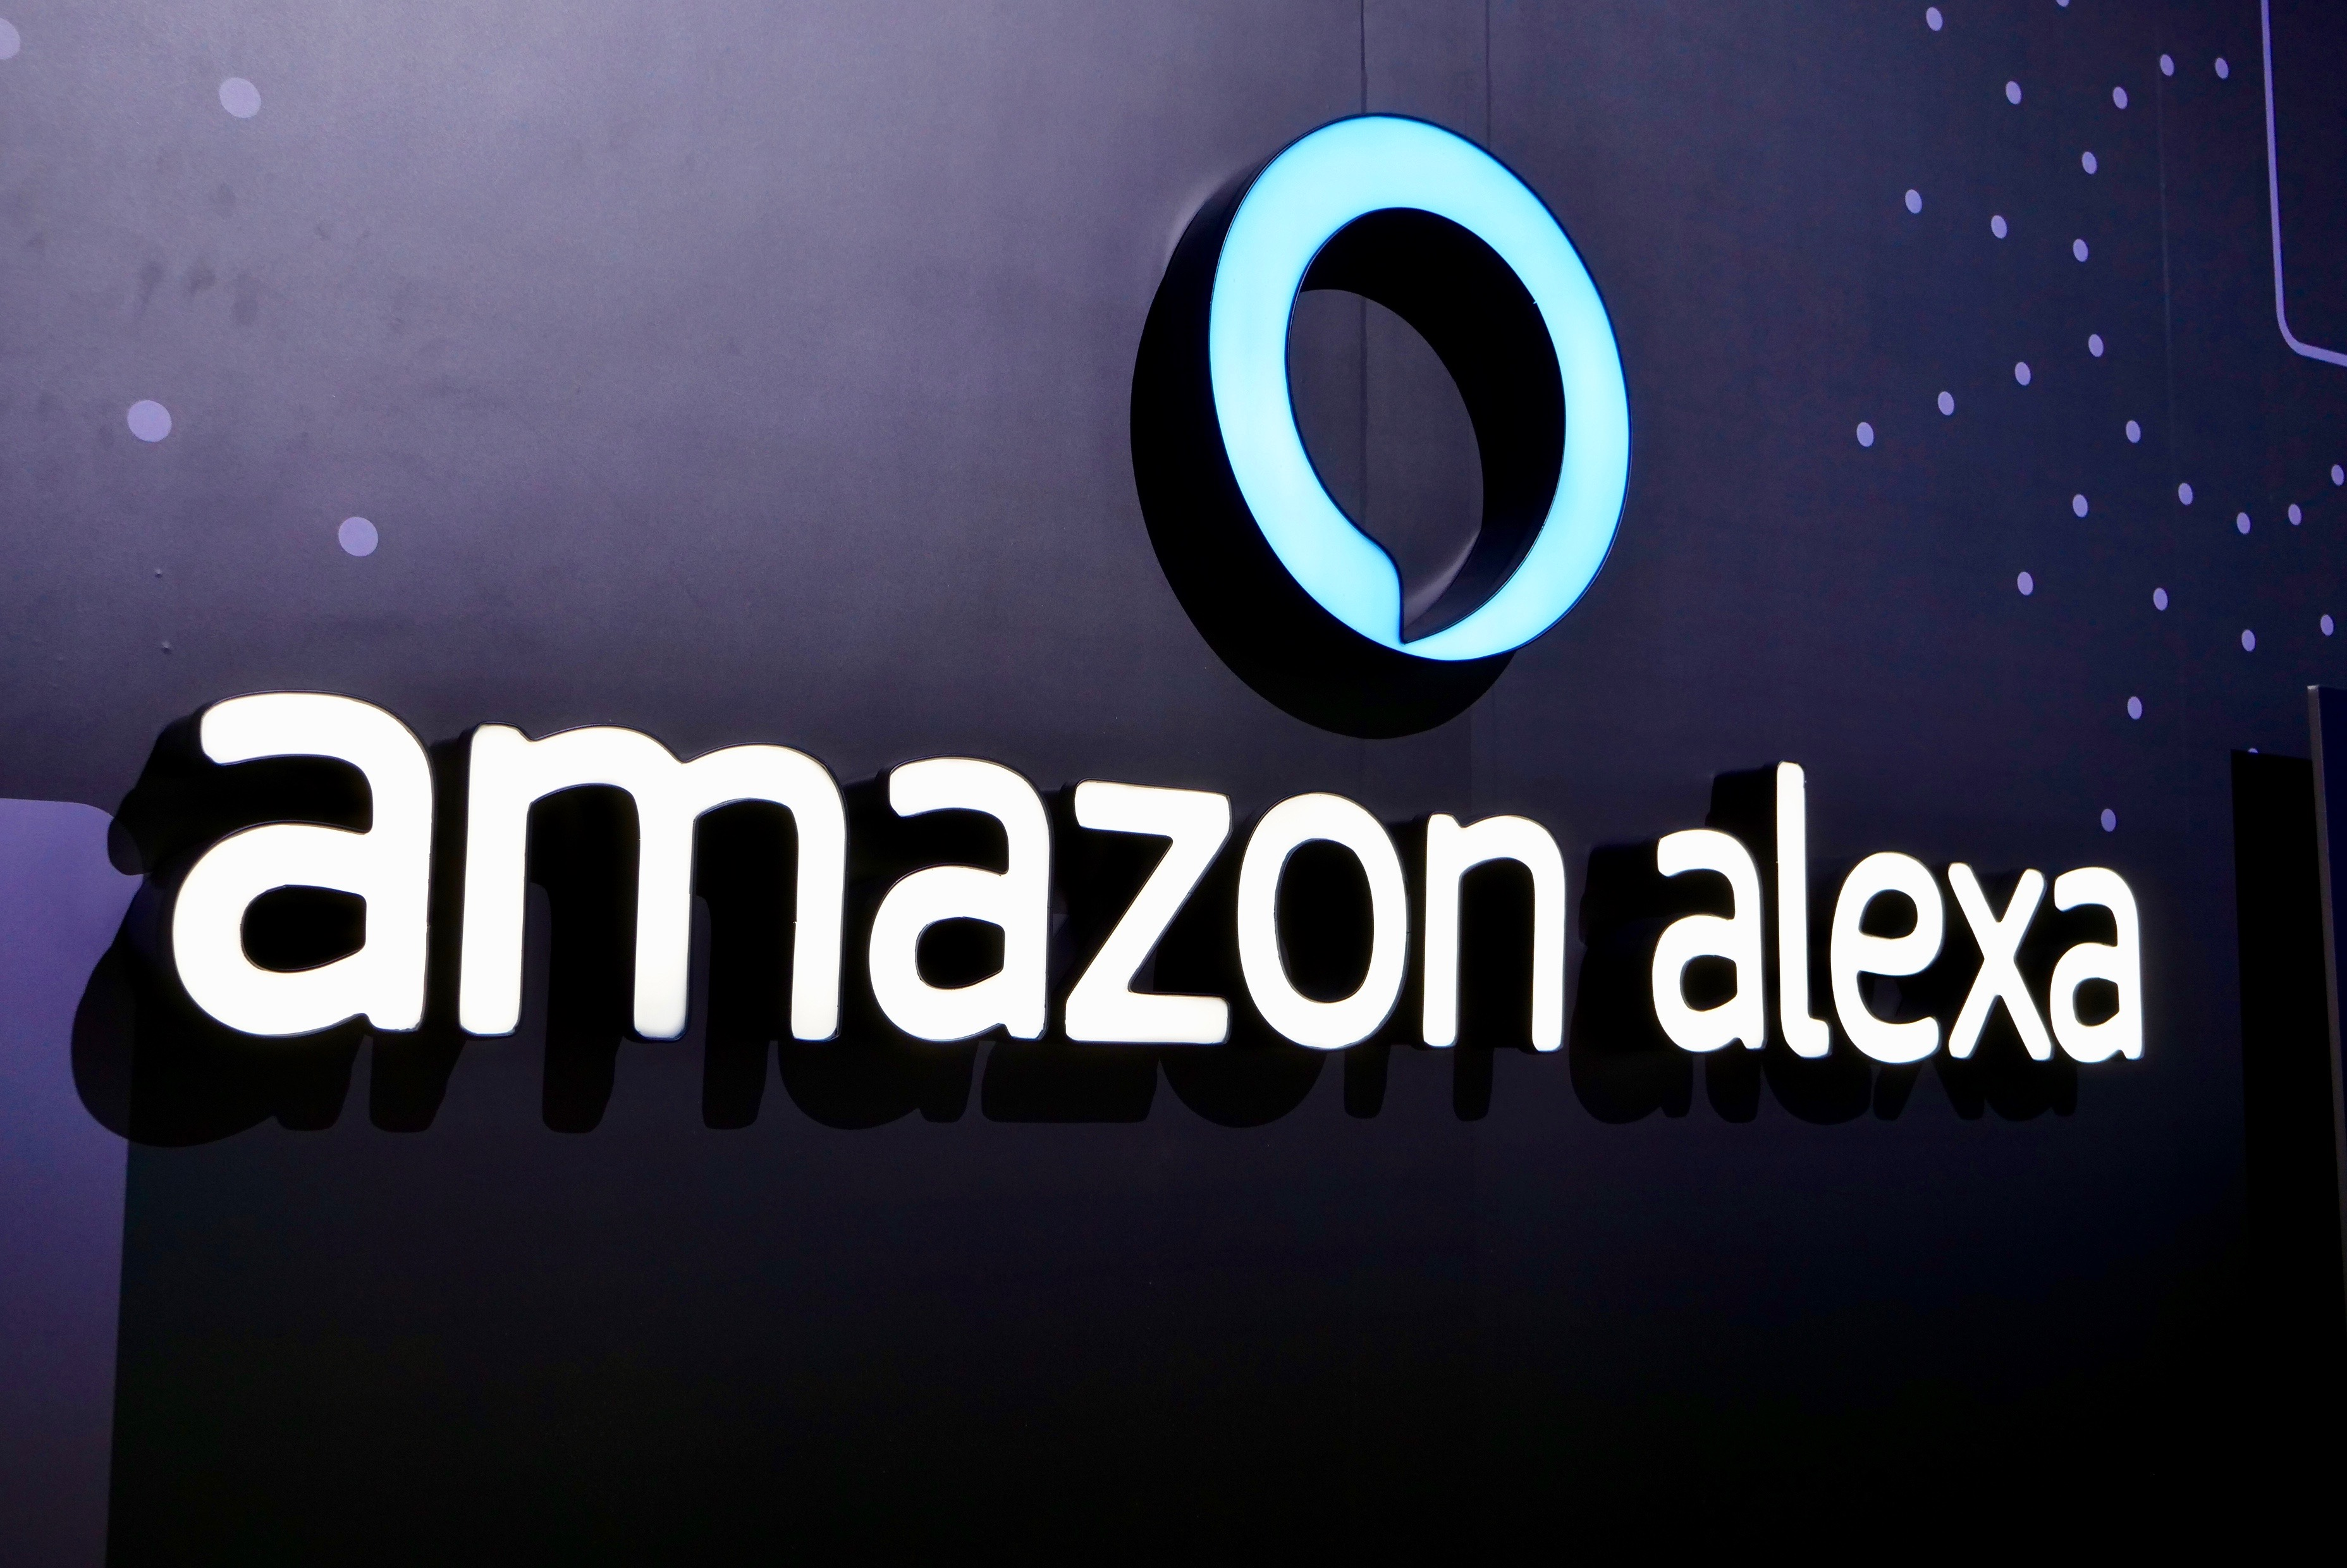 Amazon says millions of custom Alexa voice apps have come out of no-code Skill Blueprints program